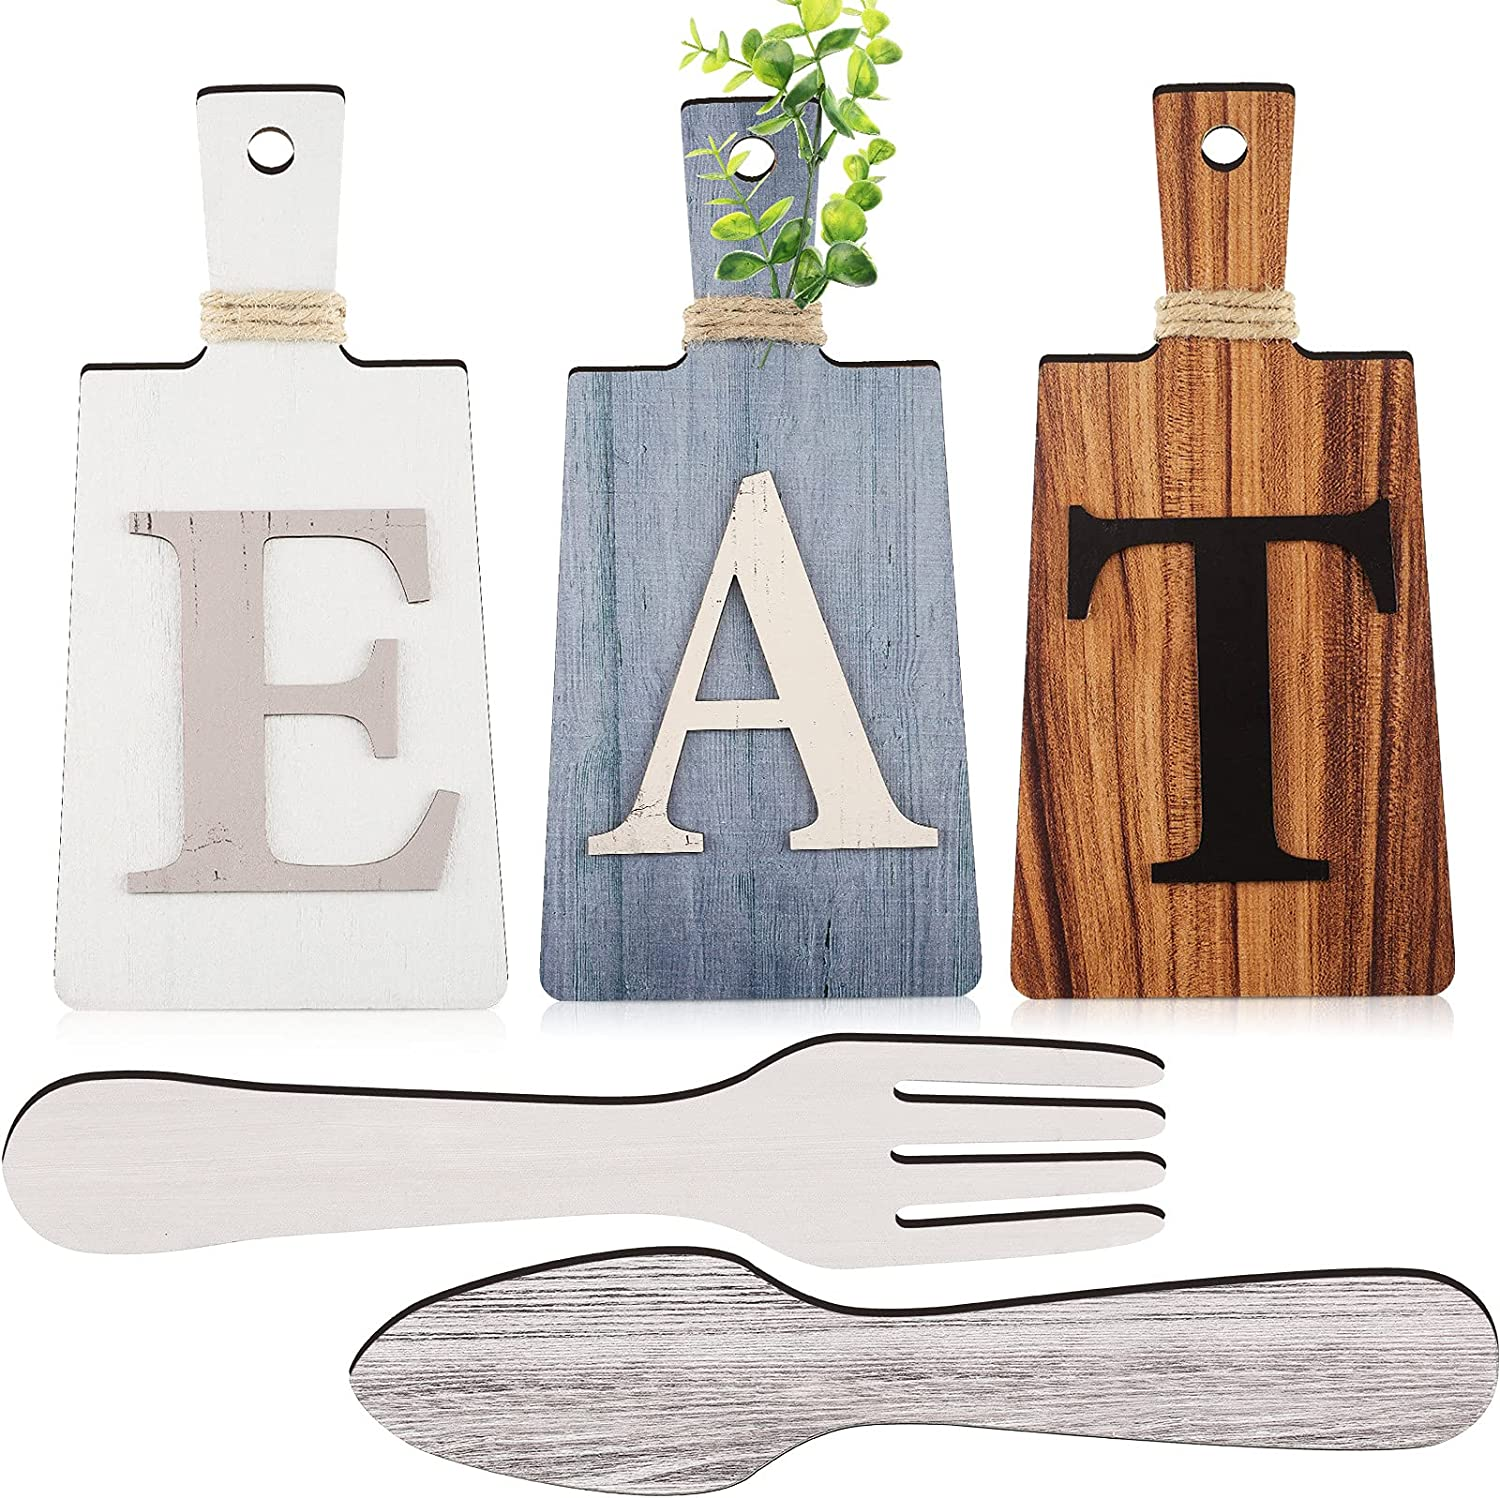 Jetec Cutting Board Eat Sign Set Hanging Art Kitchen Eat Sign Fork and Spoon Wall Decor Rustic Primitive Country Farmhouse Kitchen Decor for Dining Room Kitchen and Home Decoration, 3 Colors